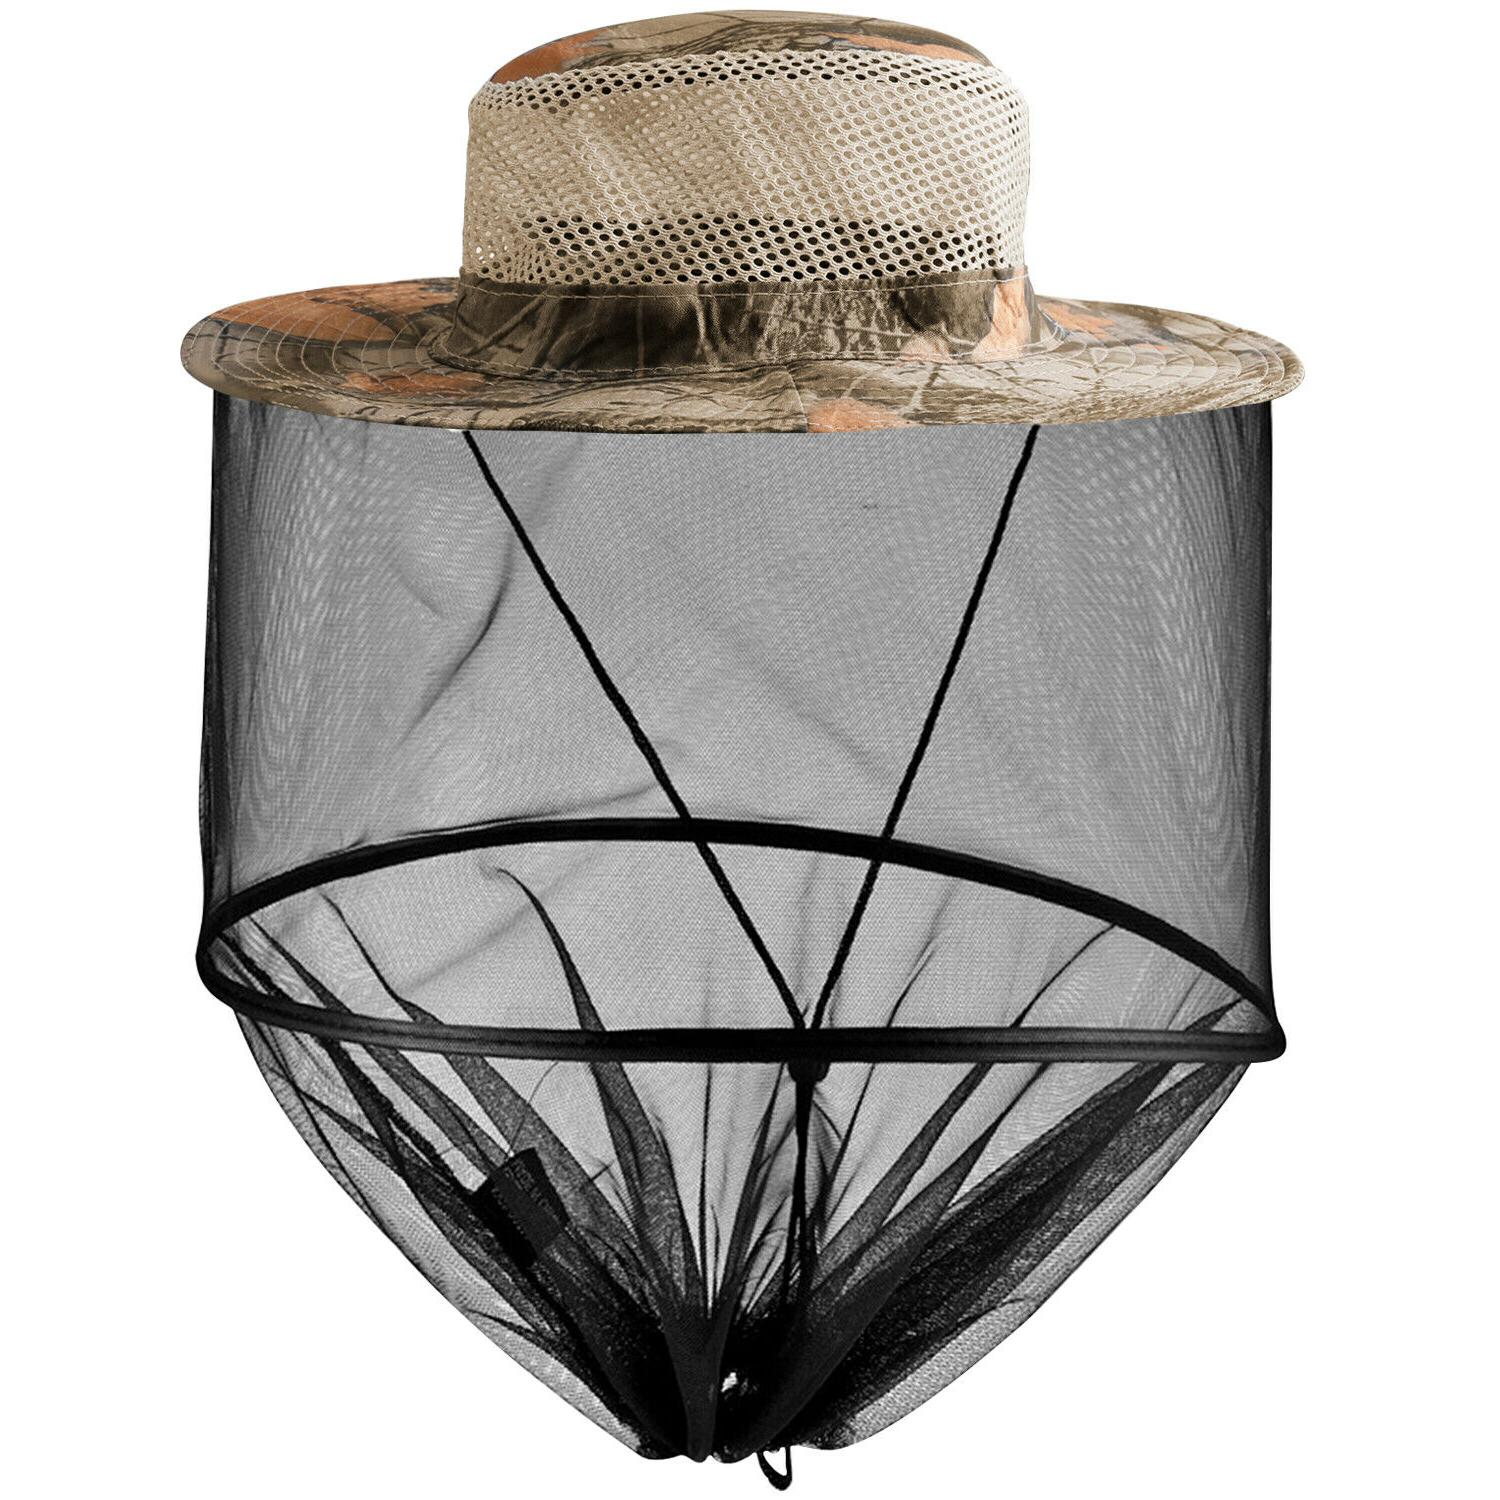 Outdoor Net Hat Insect Protection Mesh Cap